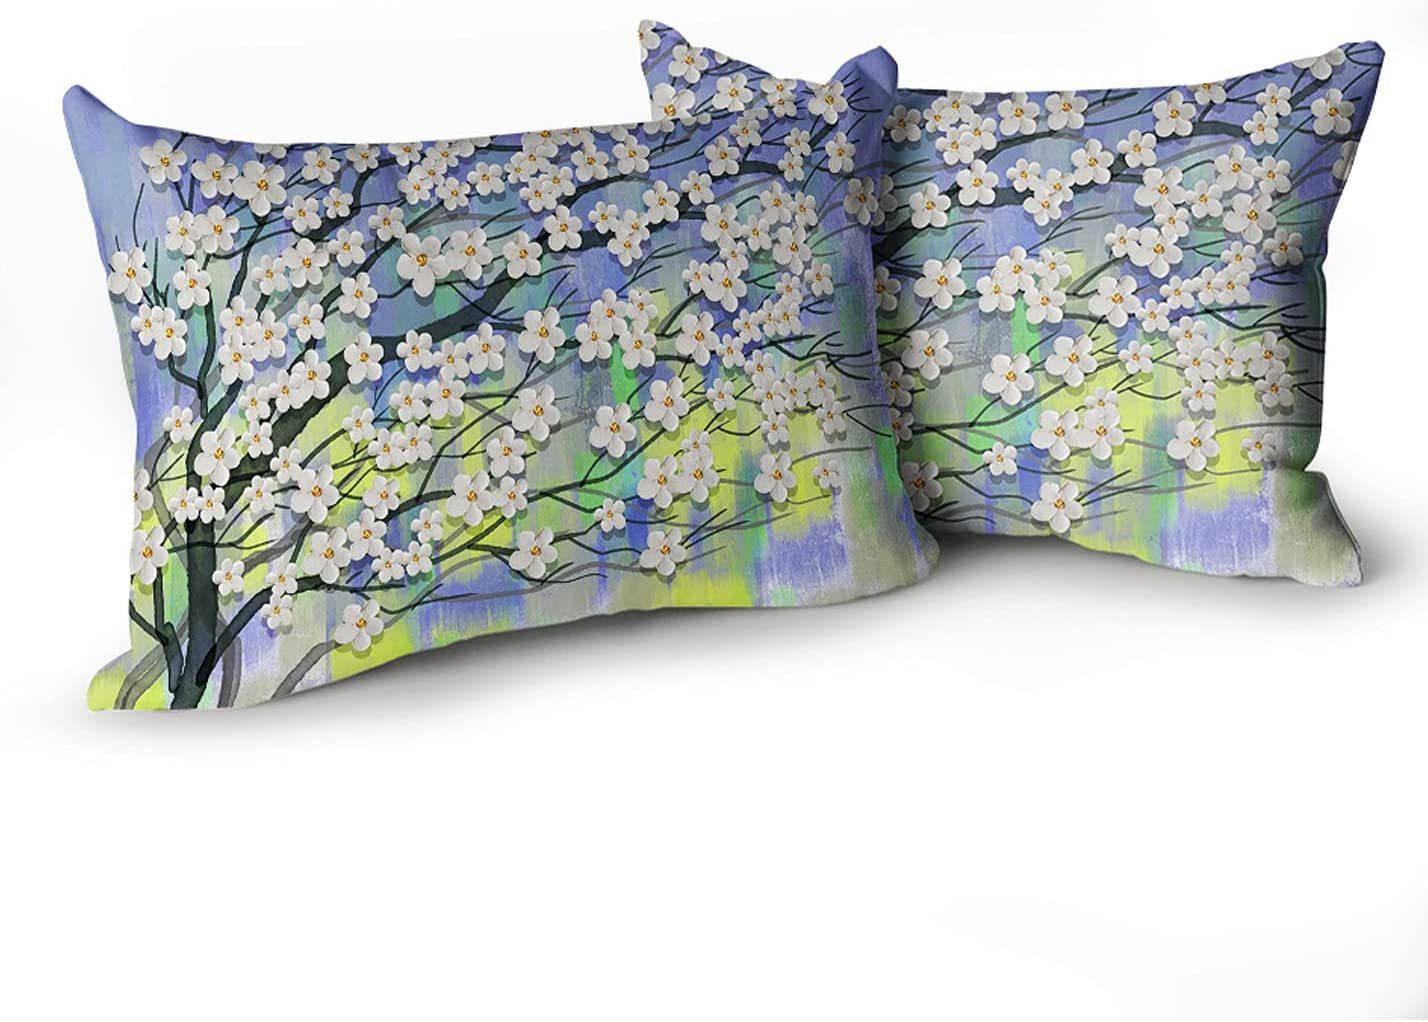 Printed Max 59% OFF Pillow Cases Set of Envelo 2 with Decorative Pillowcase Outstanding